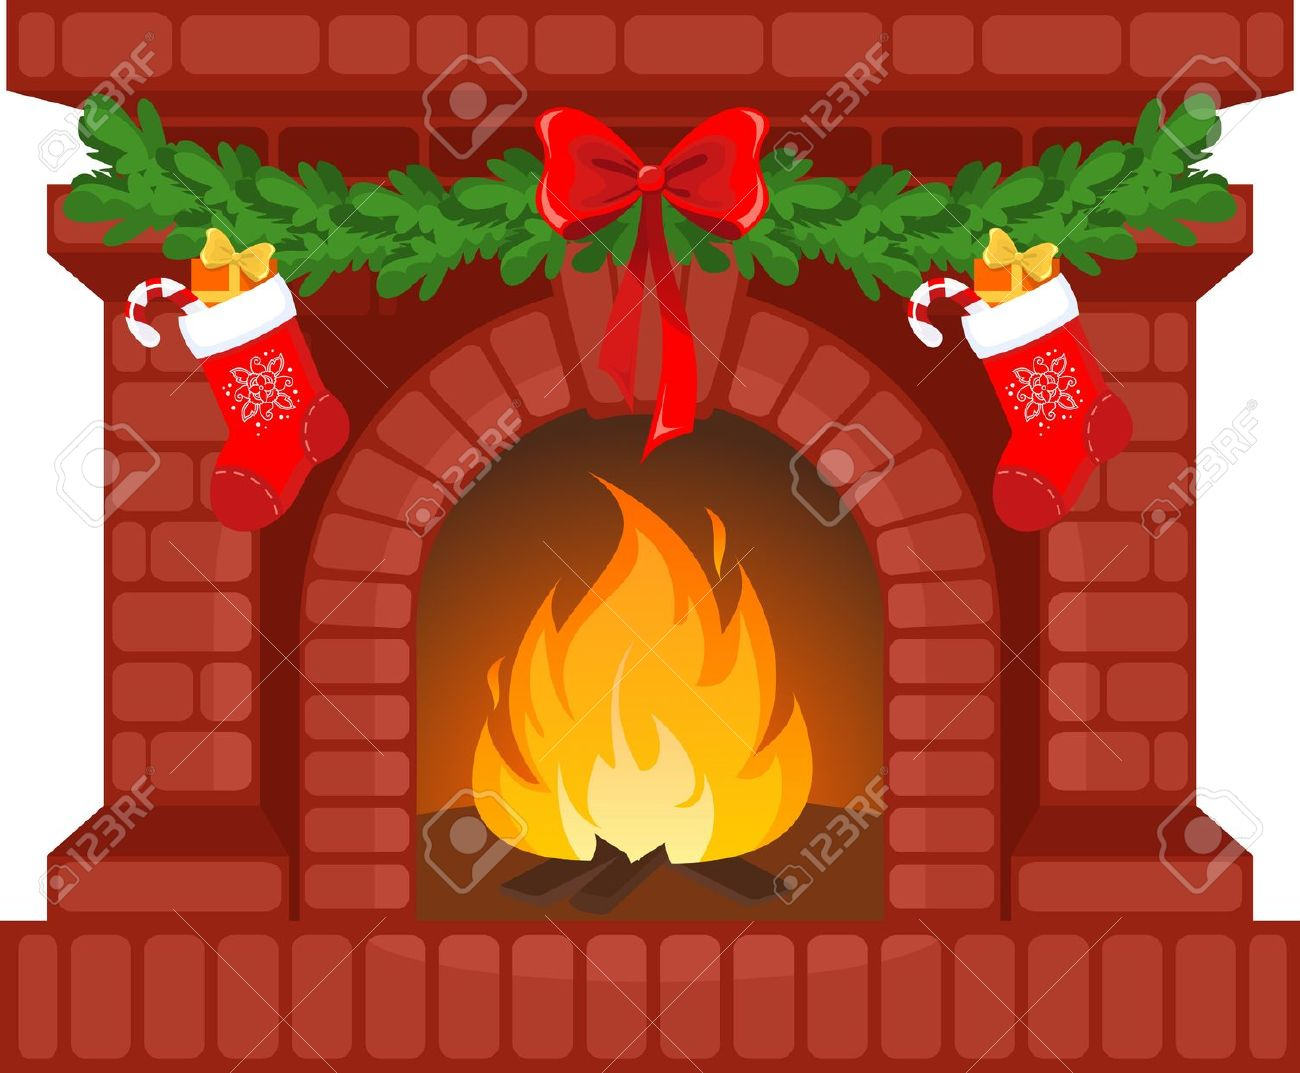 Fireplace clipart fireplace scene. Free chimney cliparts download